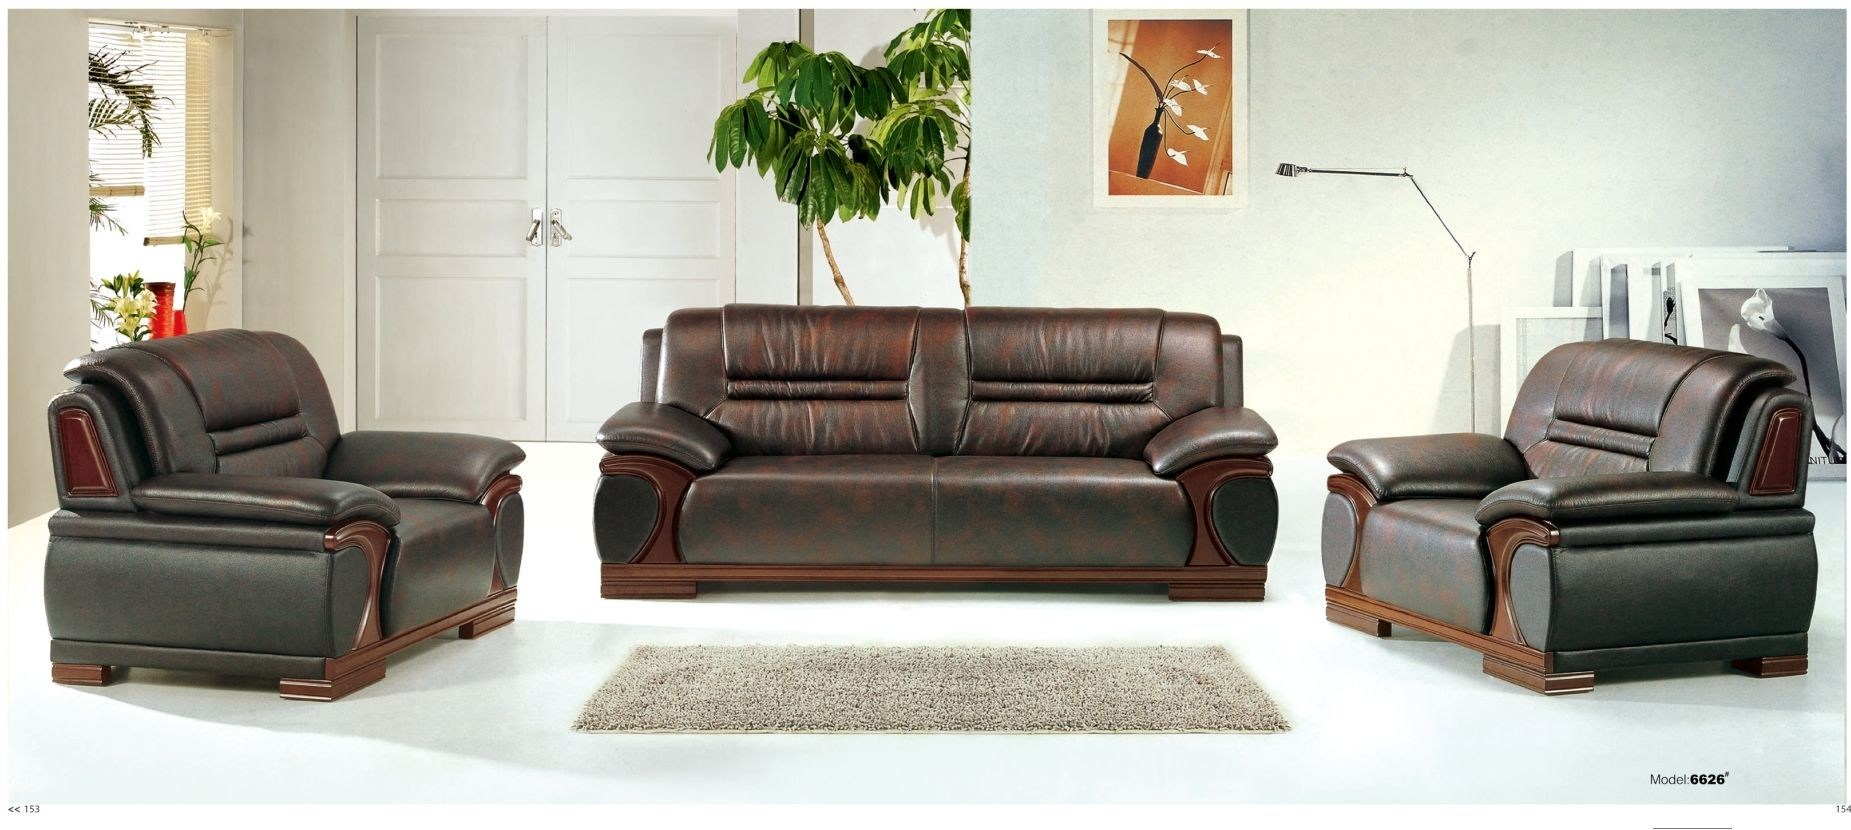 Many Color Options Leather Furniture Sofa Office